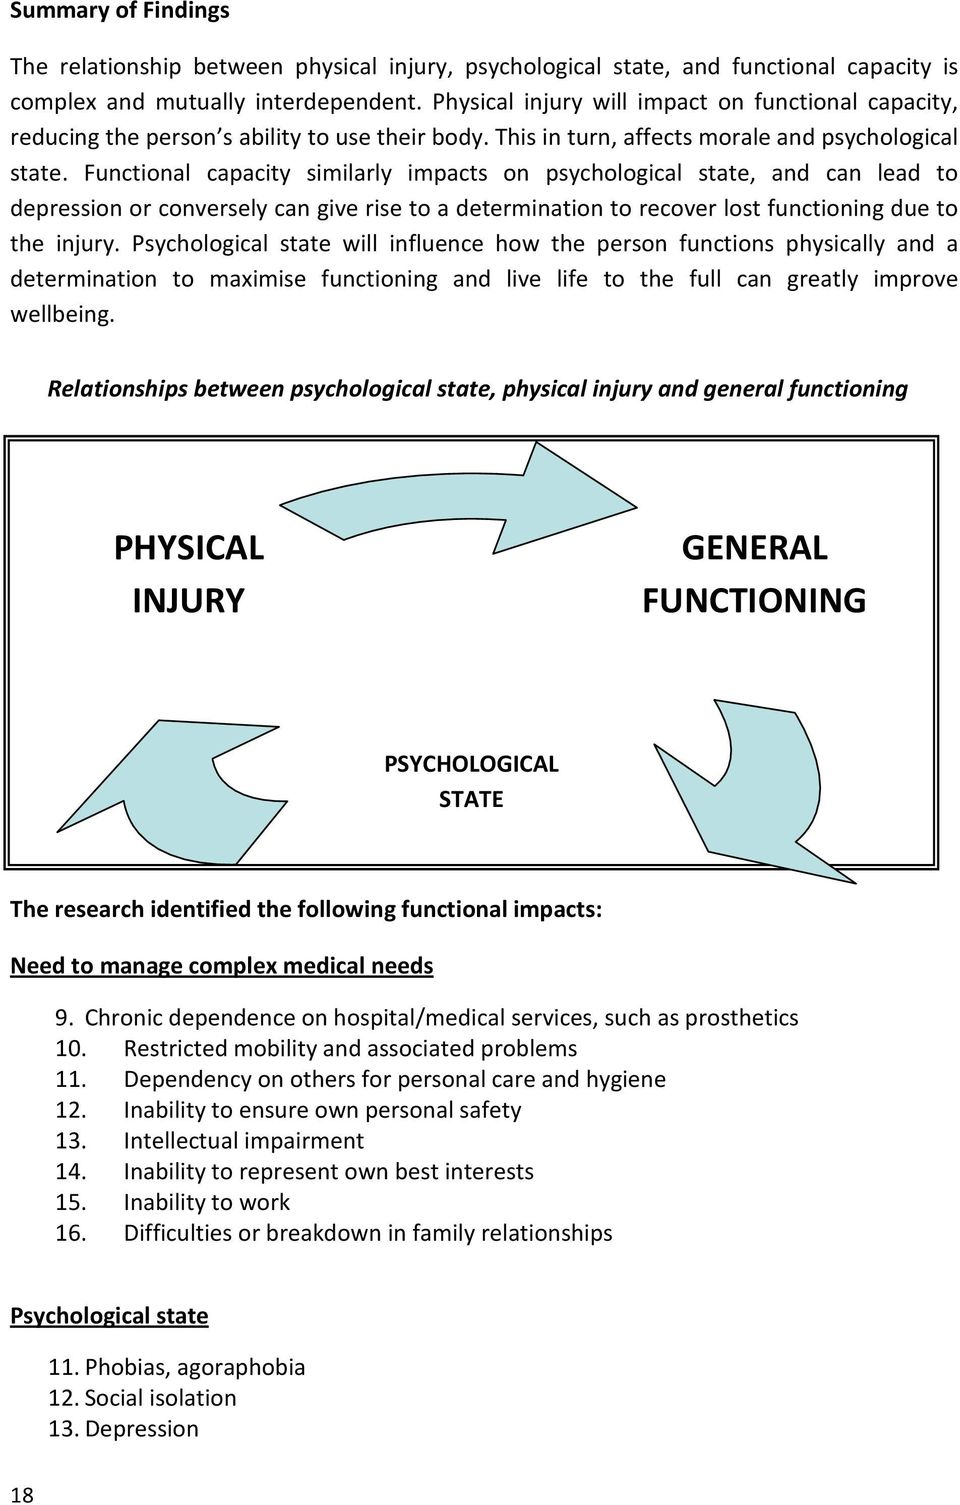 Functional capacity similarly impacts on psychological state, and can lead to depression or conversely can give rise to a determination to recover lost functioning due to the injury.